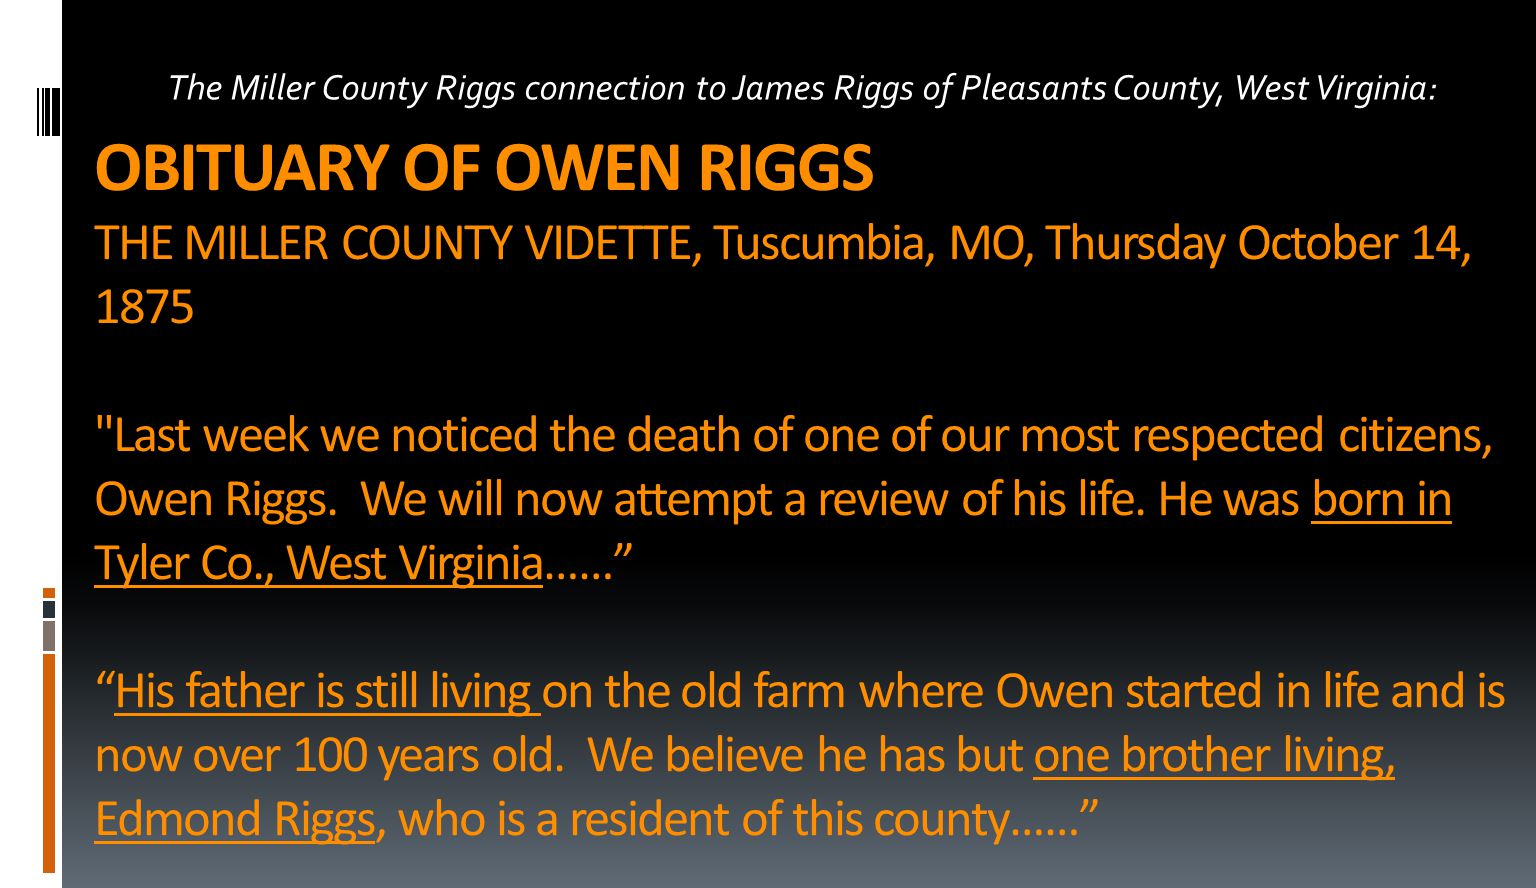 OBITUARY OF OWEN RIGGS THE MILLER COUNTY VIDETTE, Tuscumbia, MO, Thursday October 14, 1875